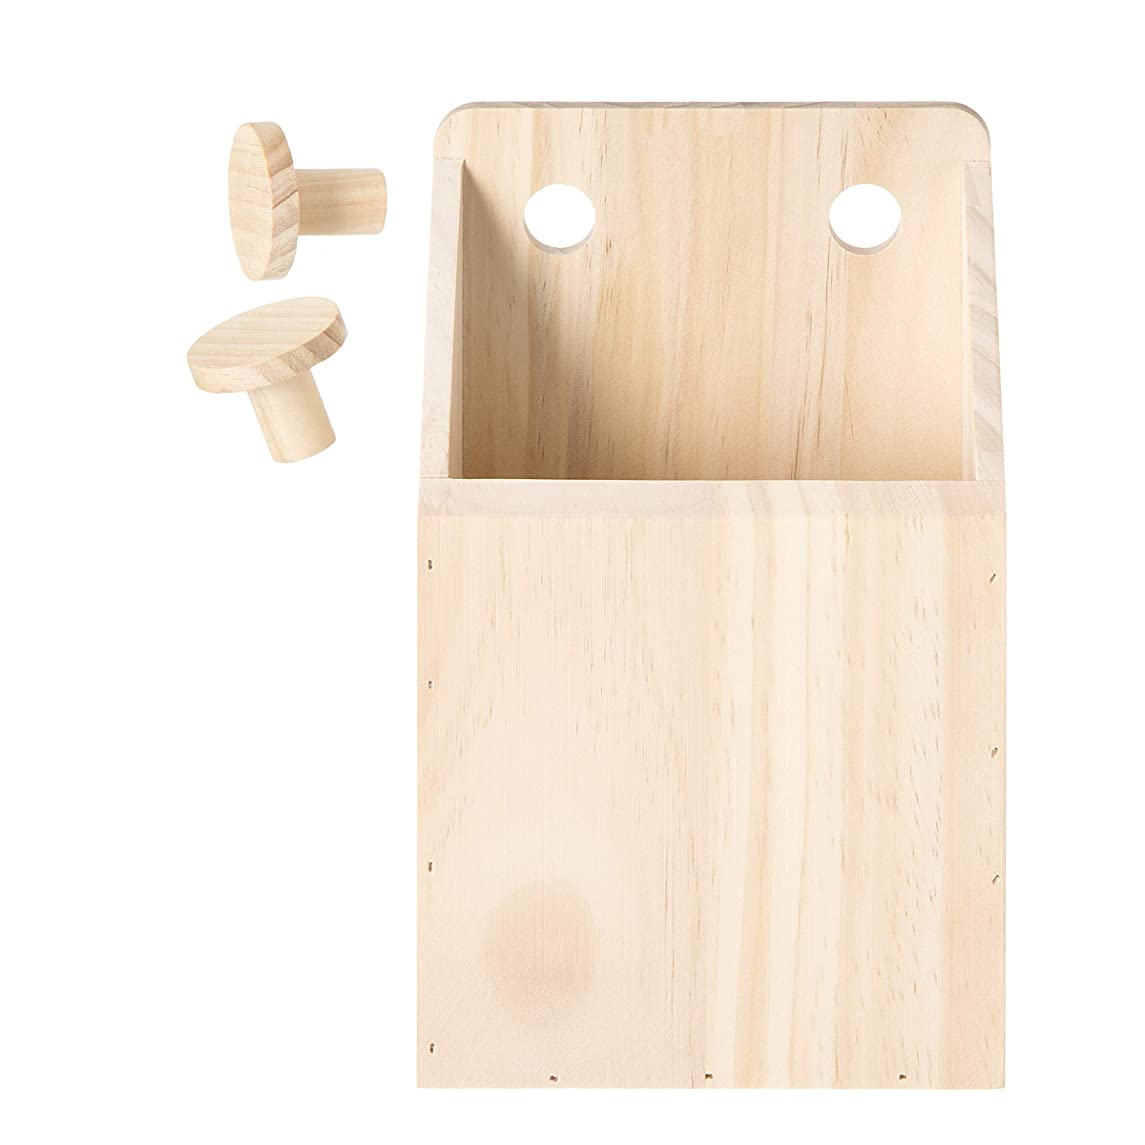 Darice 30053071 System: Wooden Pegboard Container, Unfinished, 5.5 x 8.75 Inches, Natural